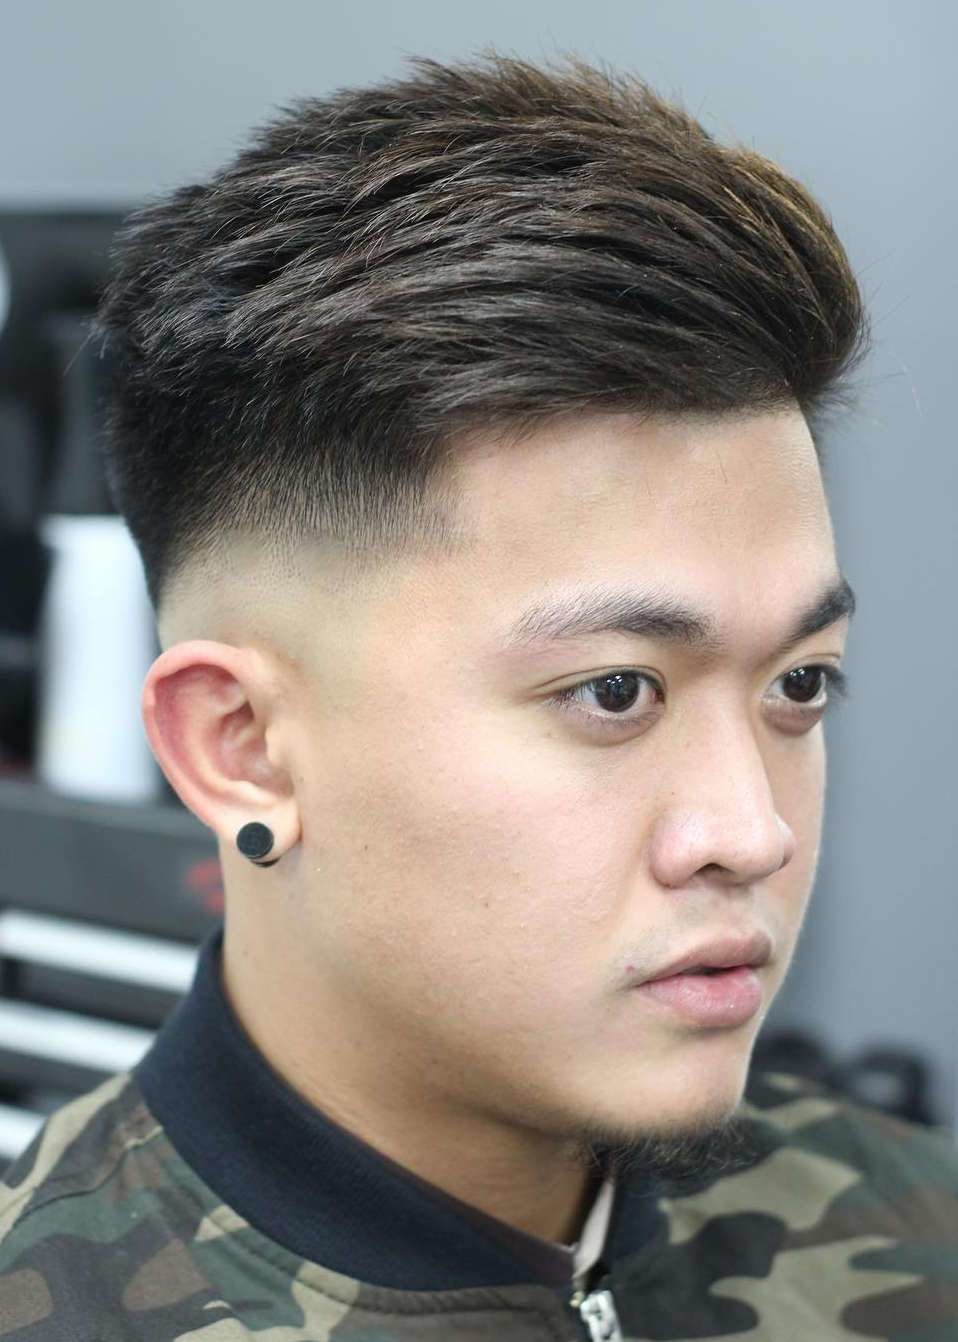 New Top 30 Trendy Asian Men Hairstyles 2019 Ideas With Pictures